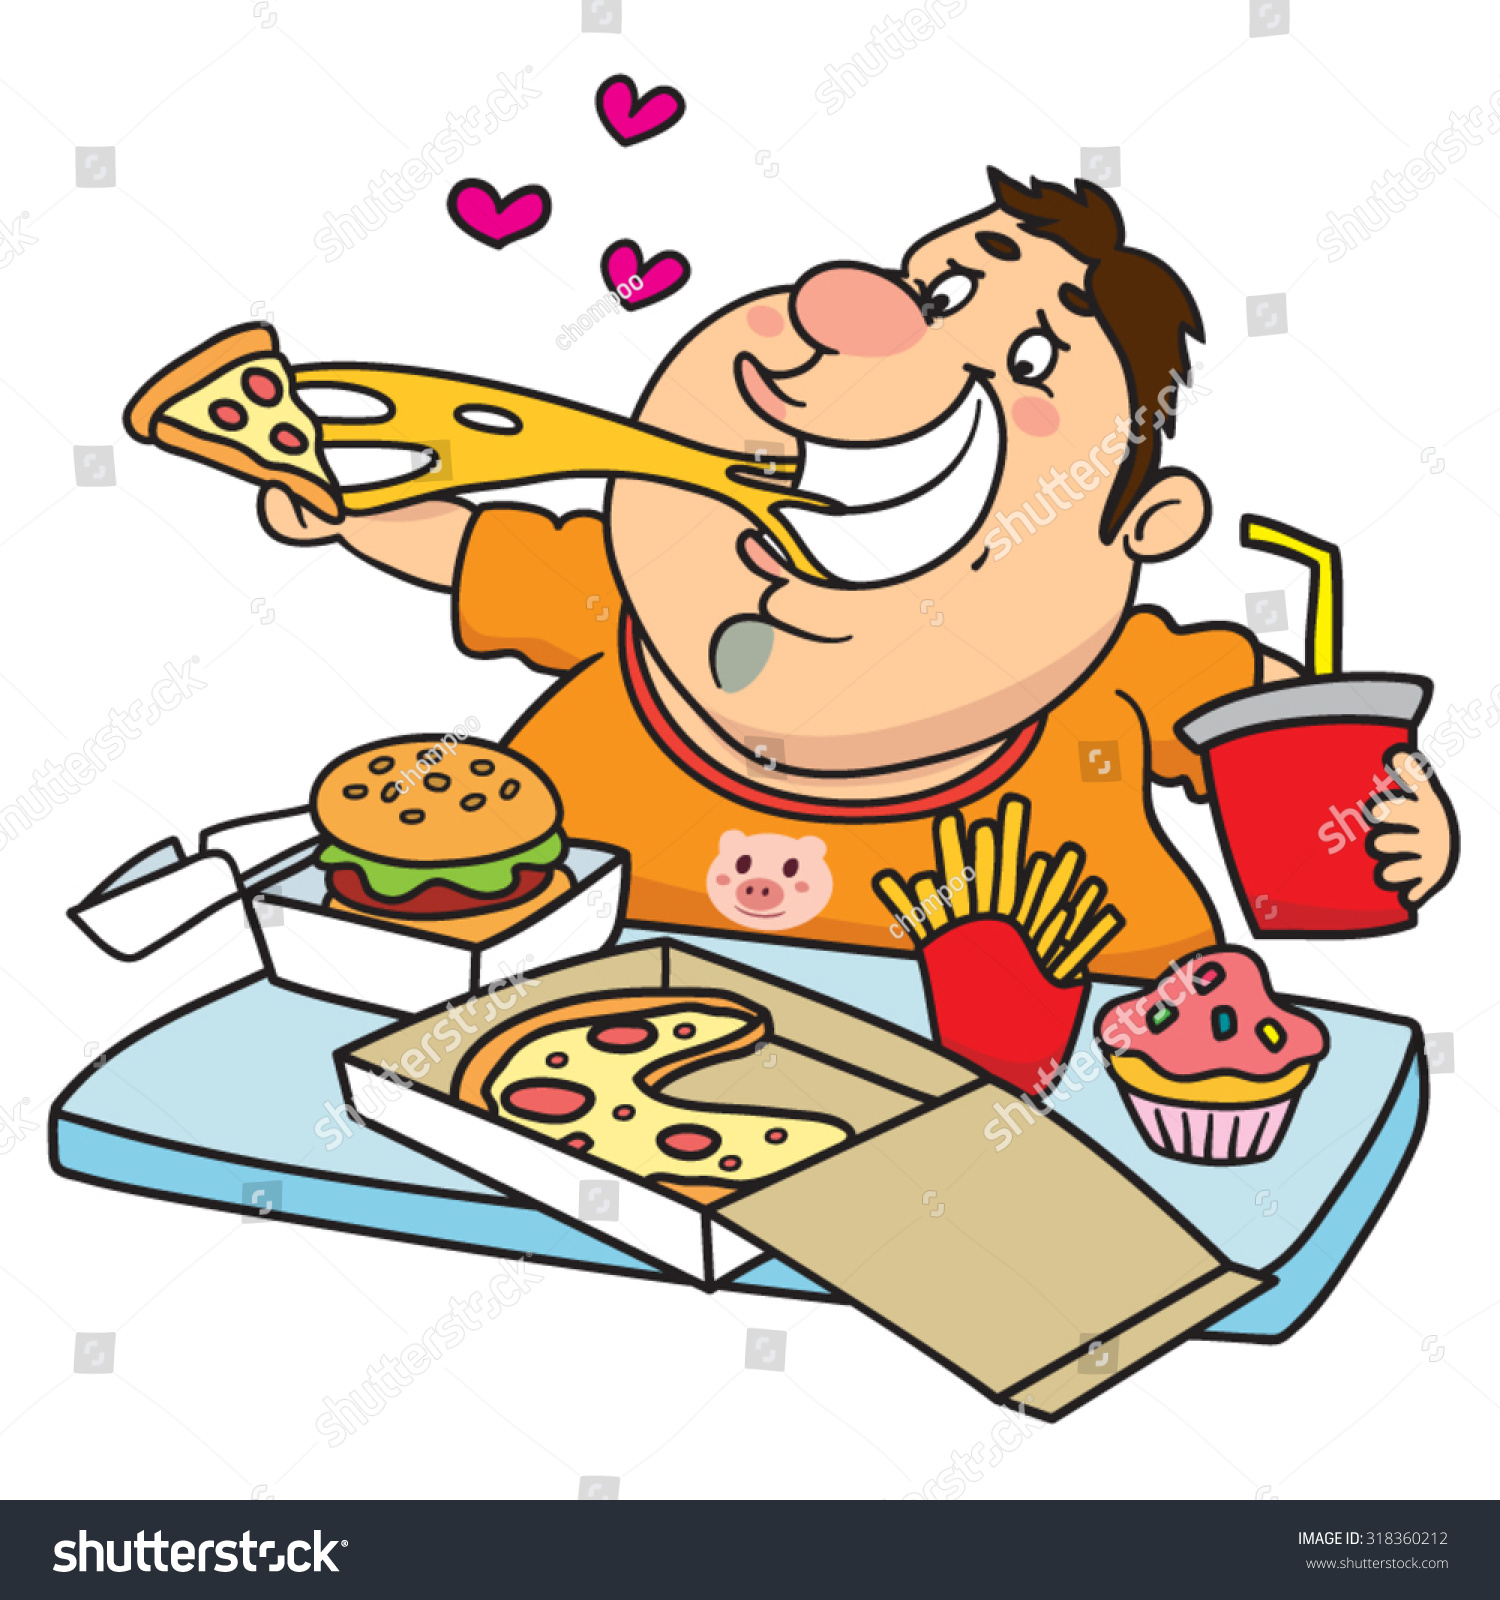 Fat Man Eating a Tray Full of Fast Food… Stock Photo.